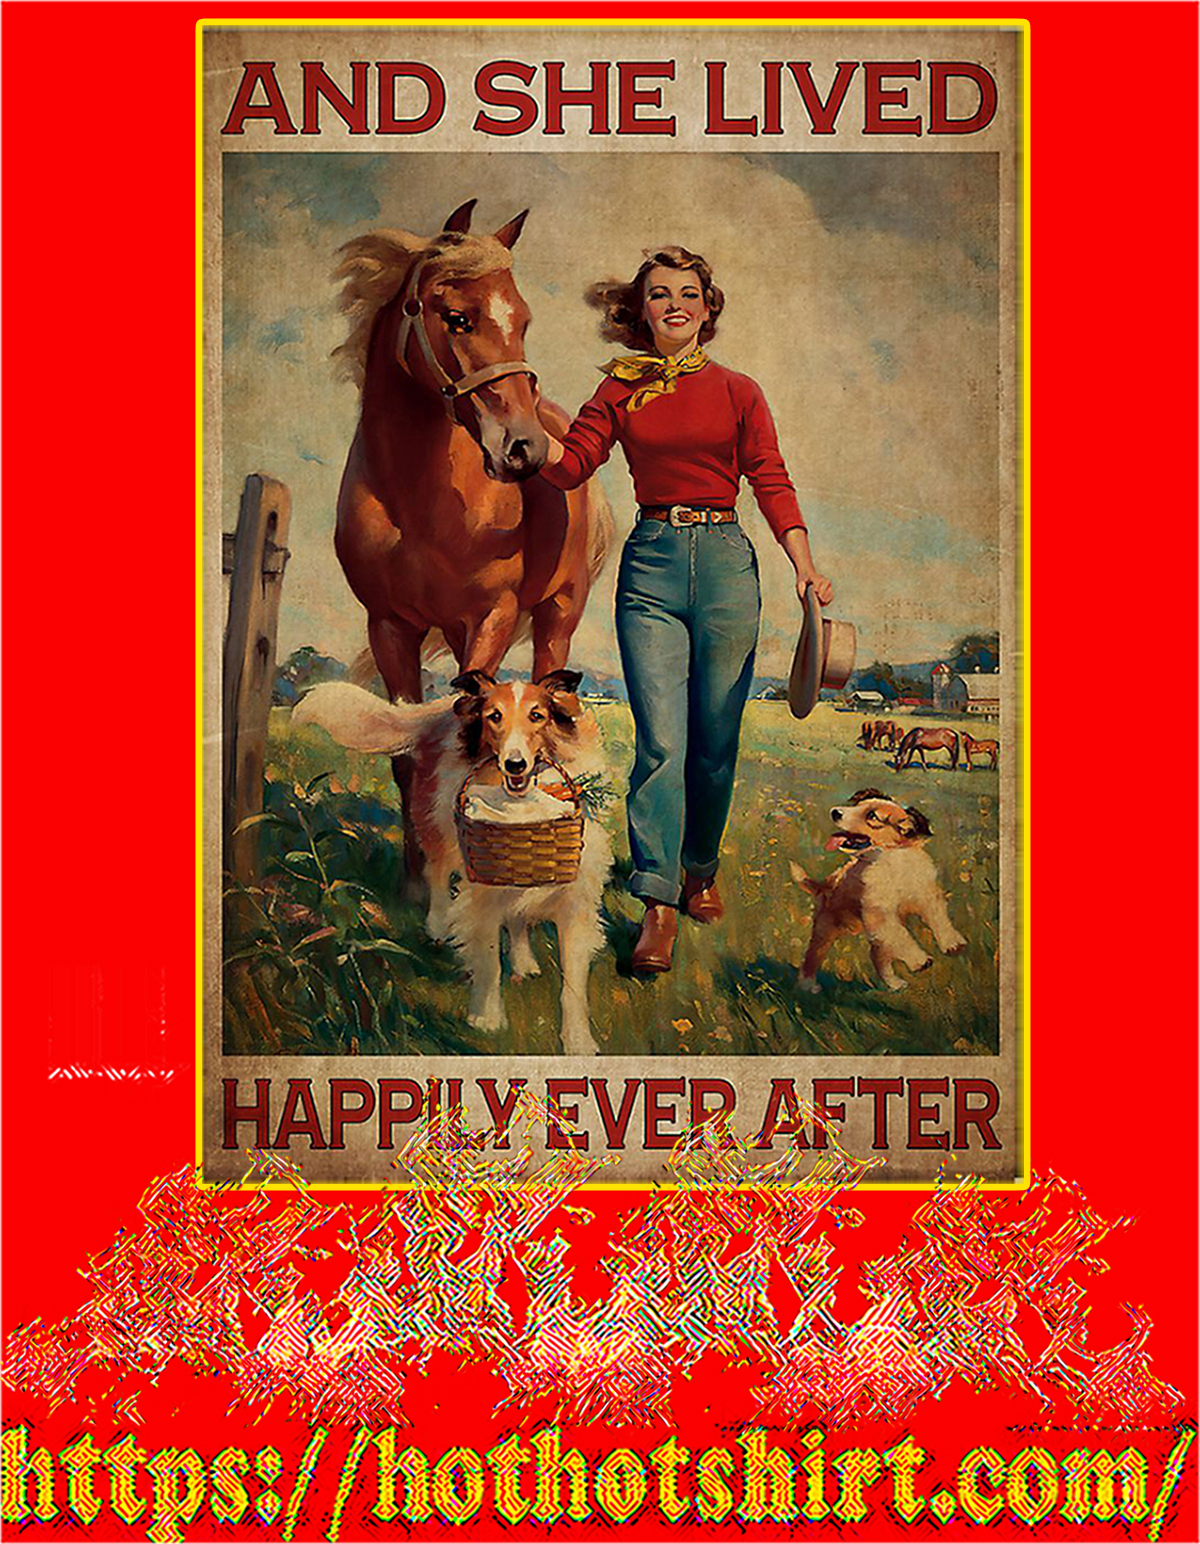 Dog and horse And she lived happily ever after poster - A4